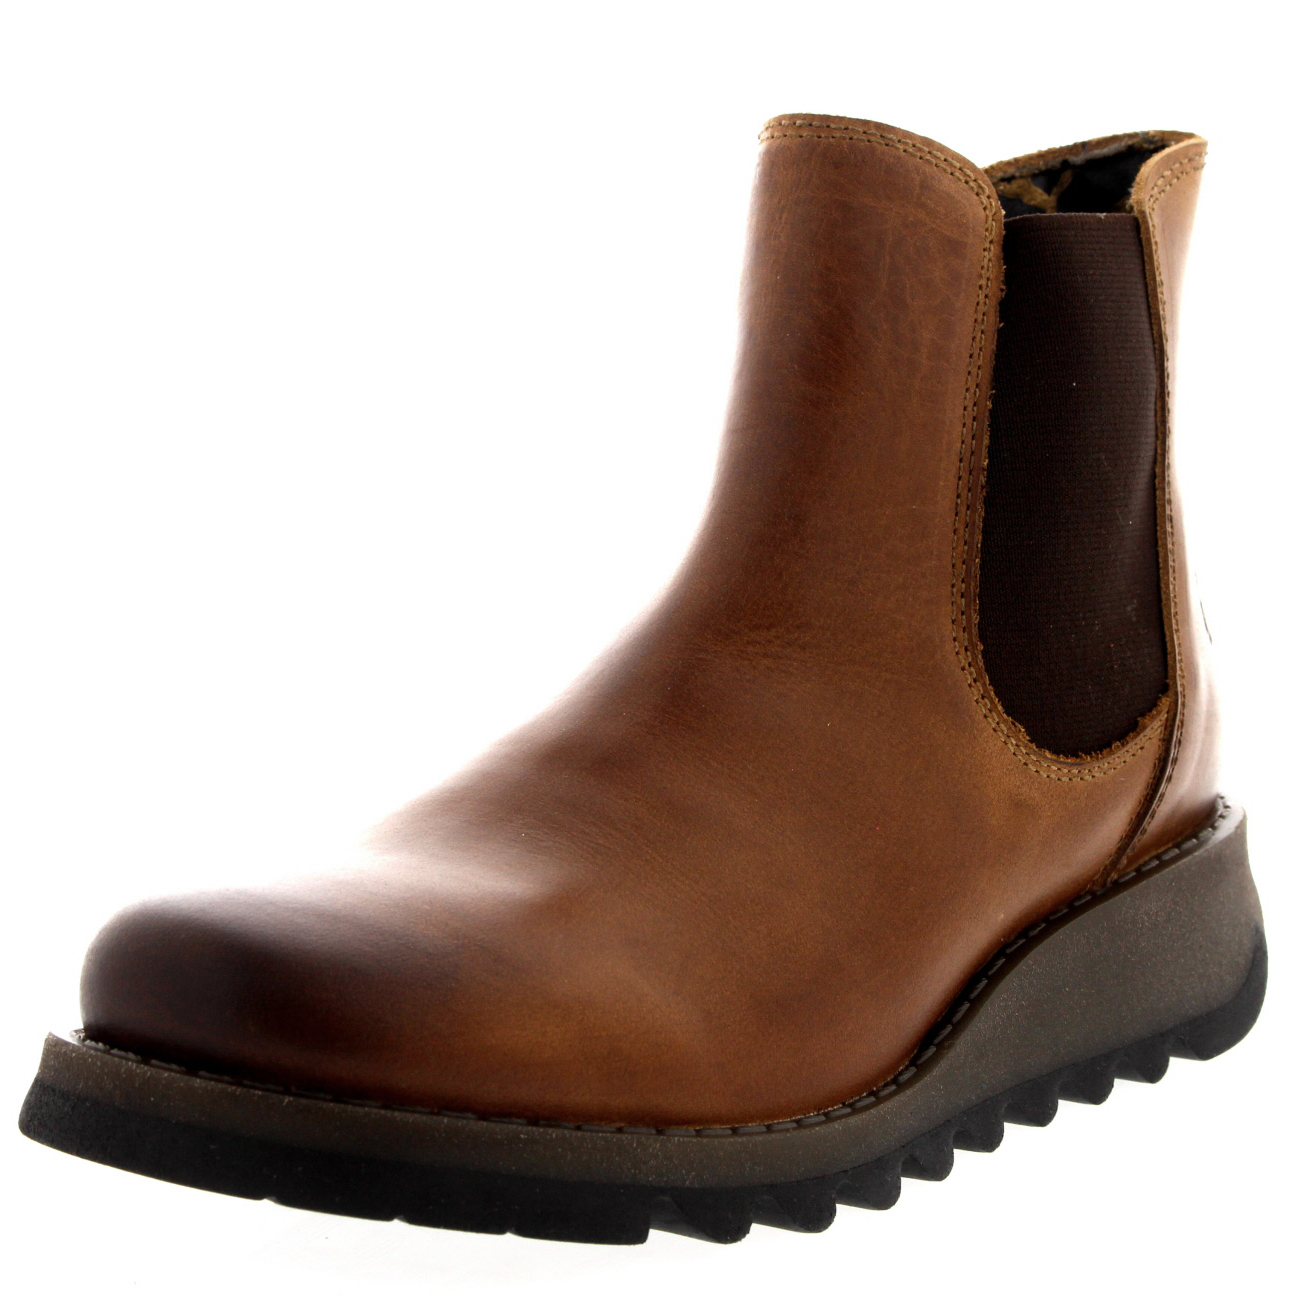 Wedge Boots. A wedge boot is the ideal choice for a stylish look this season and Daniel Footwear has a fabulous range to choose from! Find designers such as Fly London, Marian, Daniel and more.